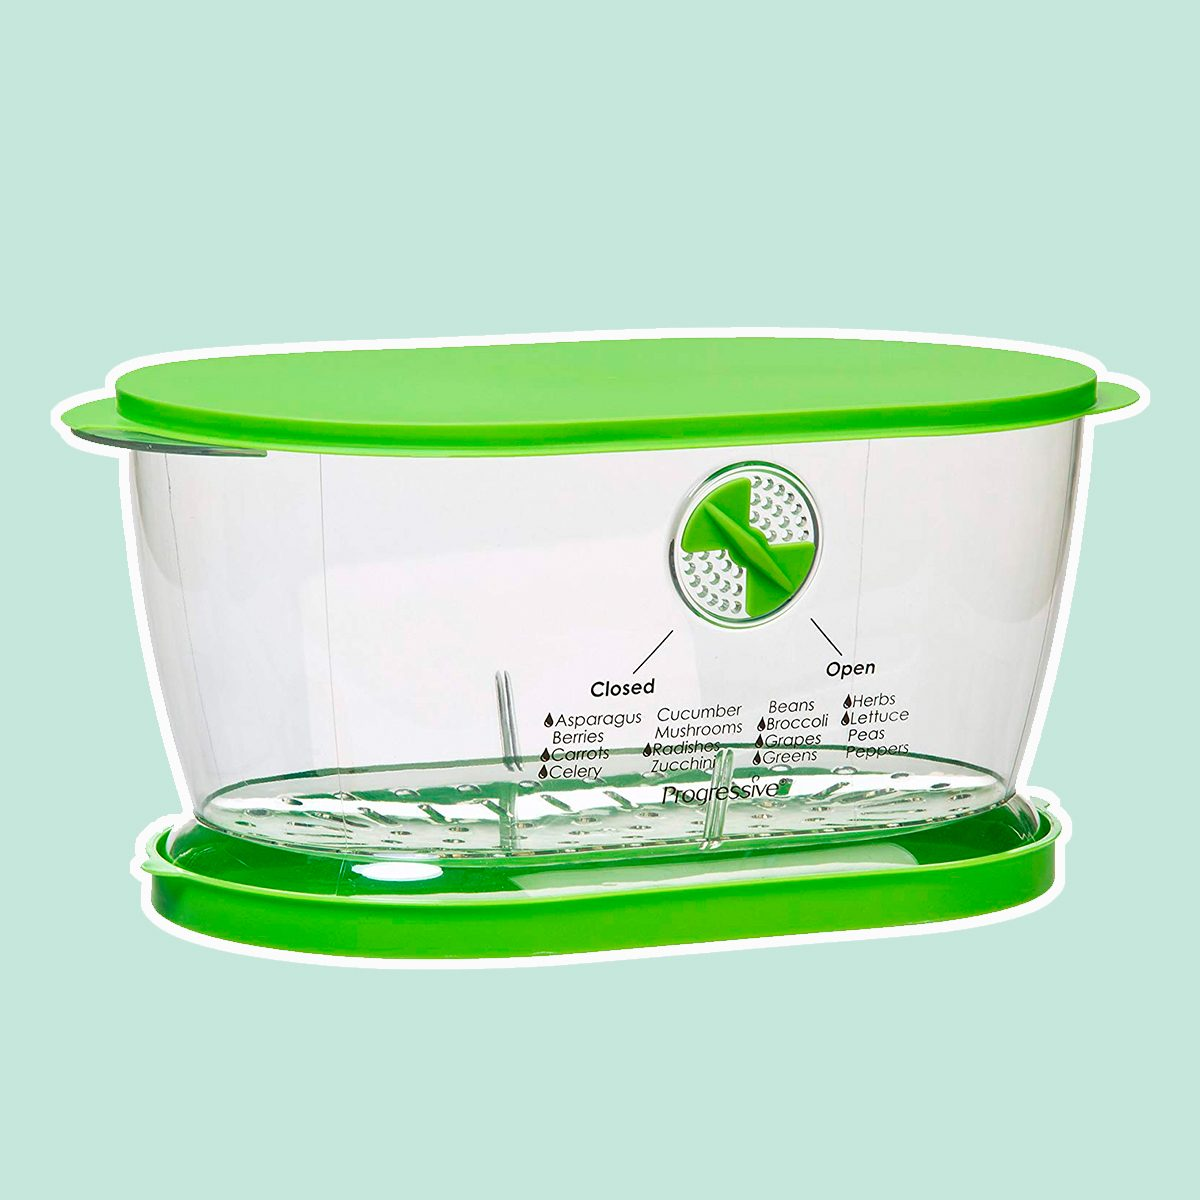 Prep Solutions by Progressive Lettuce Keeper Produce Storage Container, 4.7 Quarts